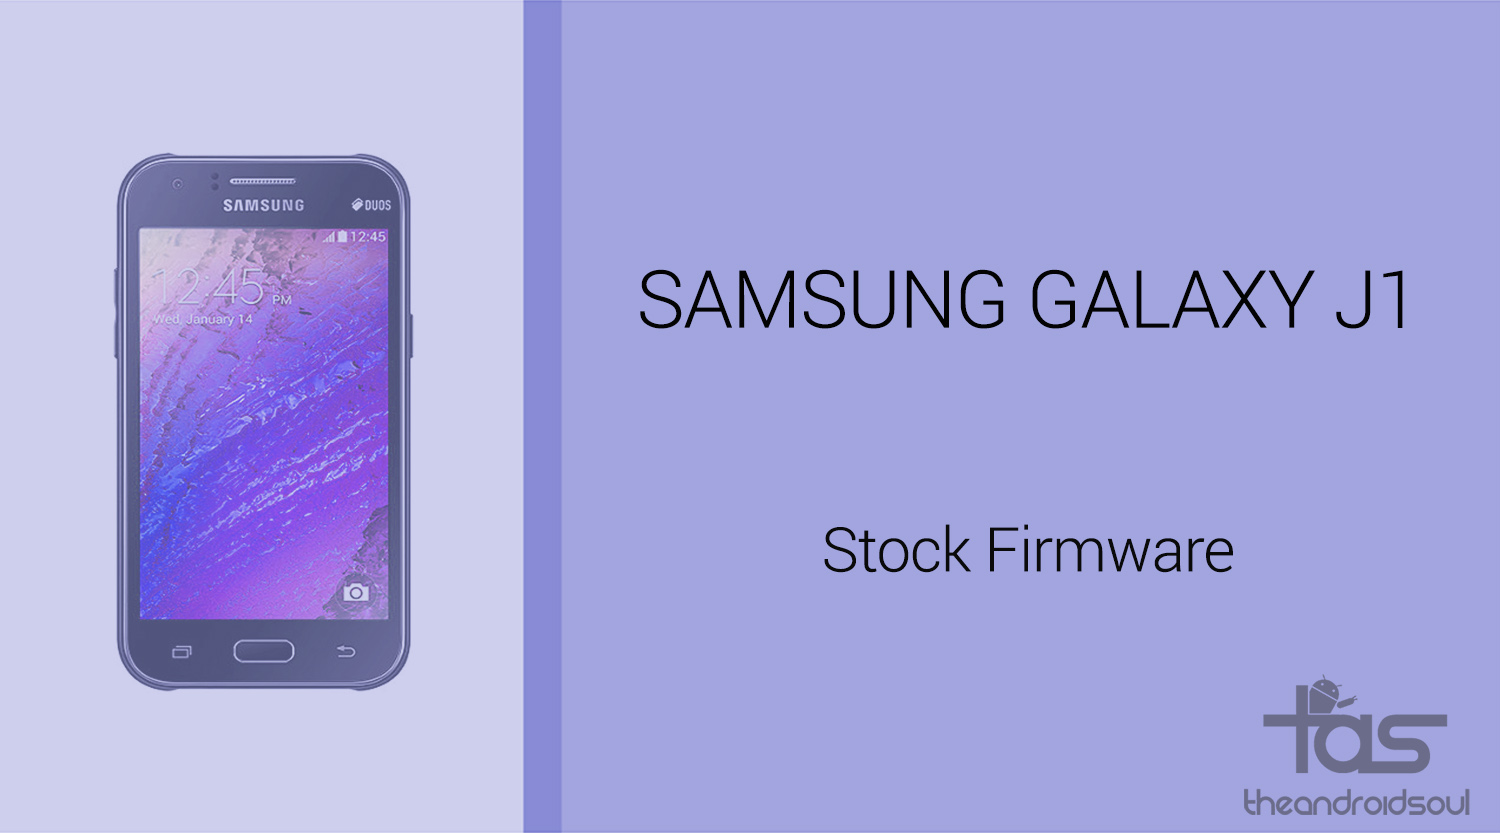 Samsung j1 software